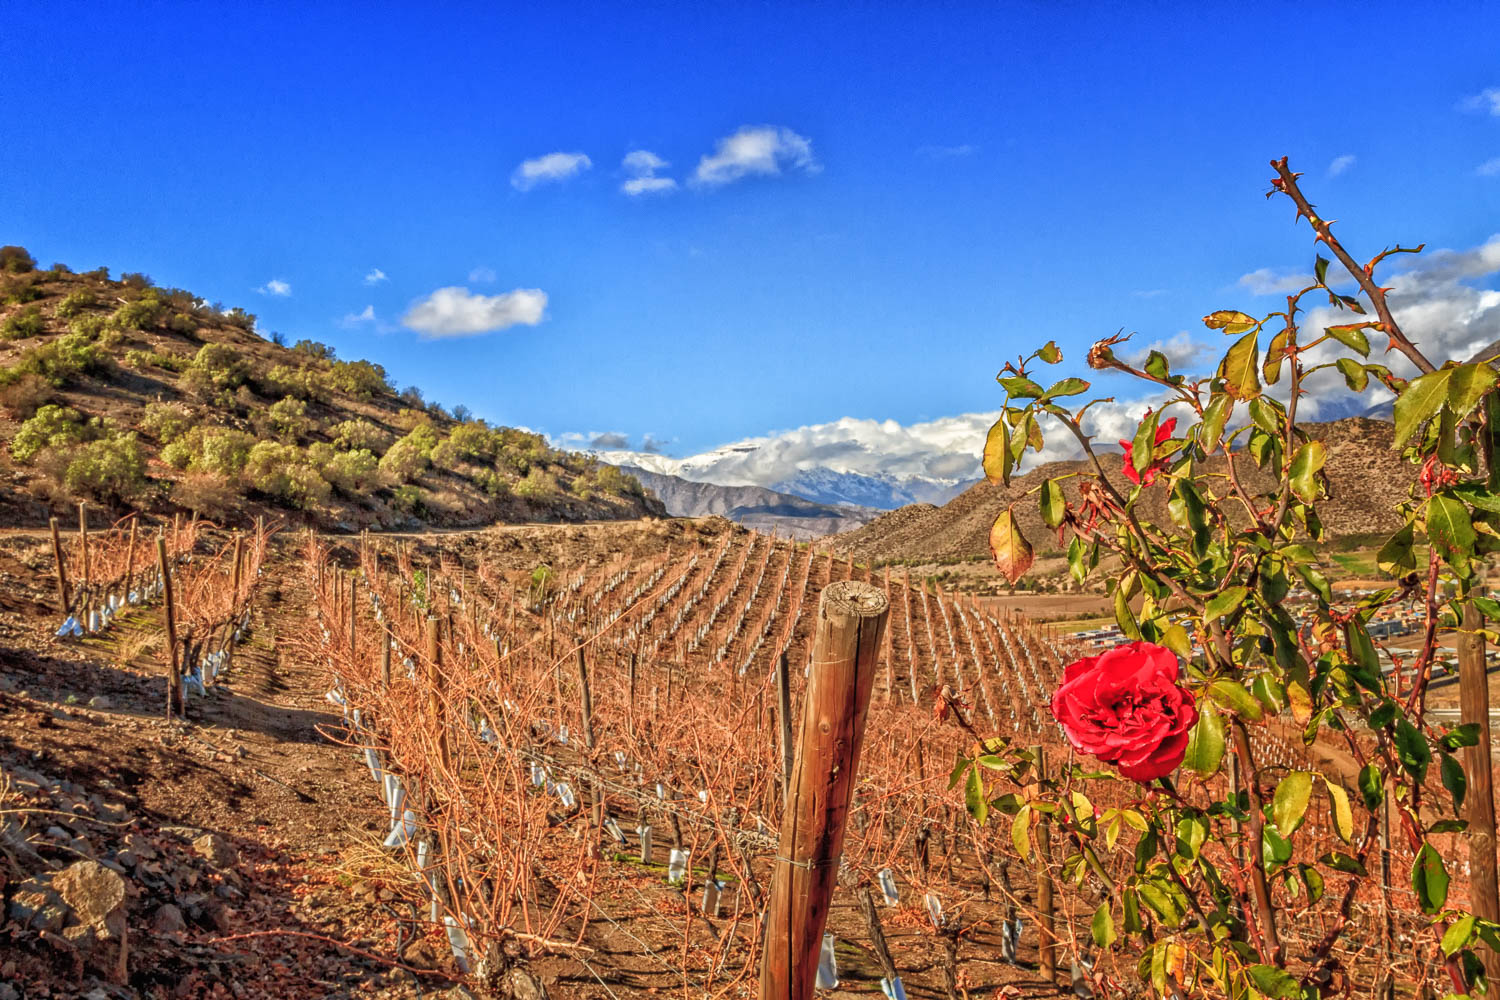 Vineyards in the foothills of the Andes